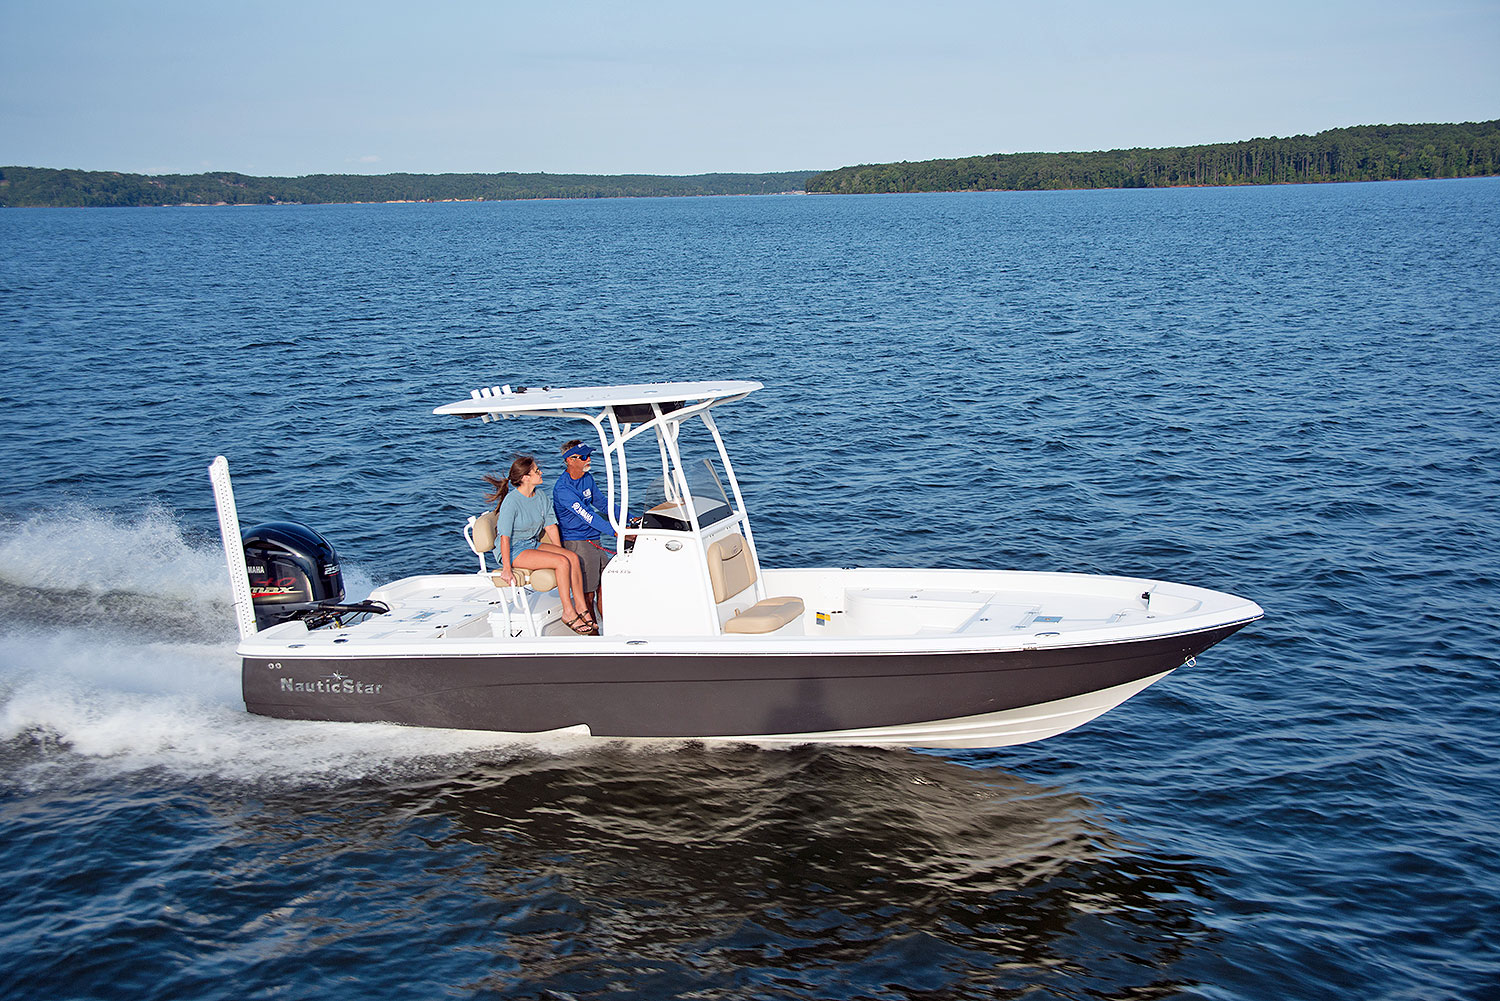 A man captaining the NauticStar 244 XTS with a woman passenger